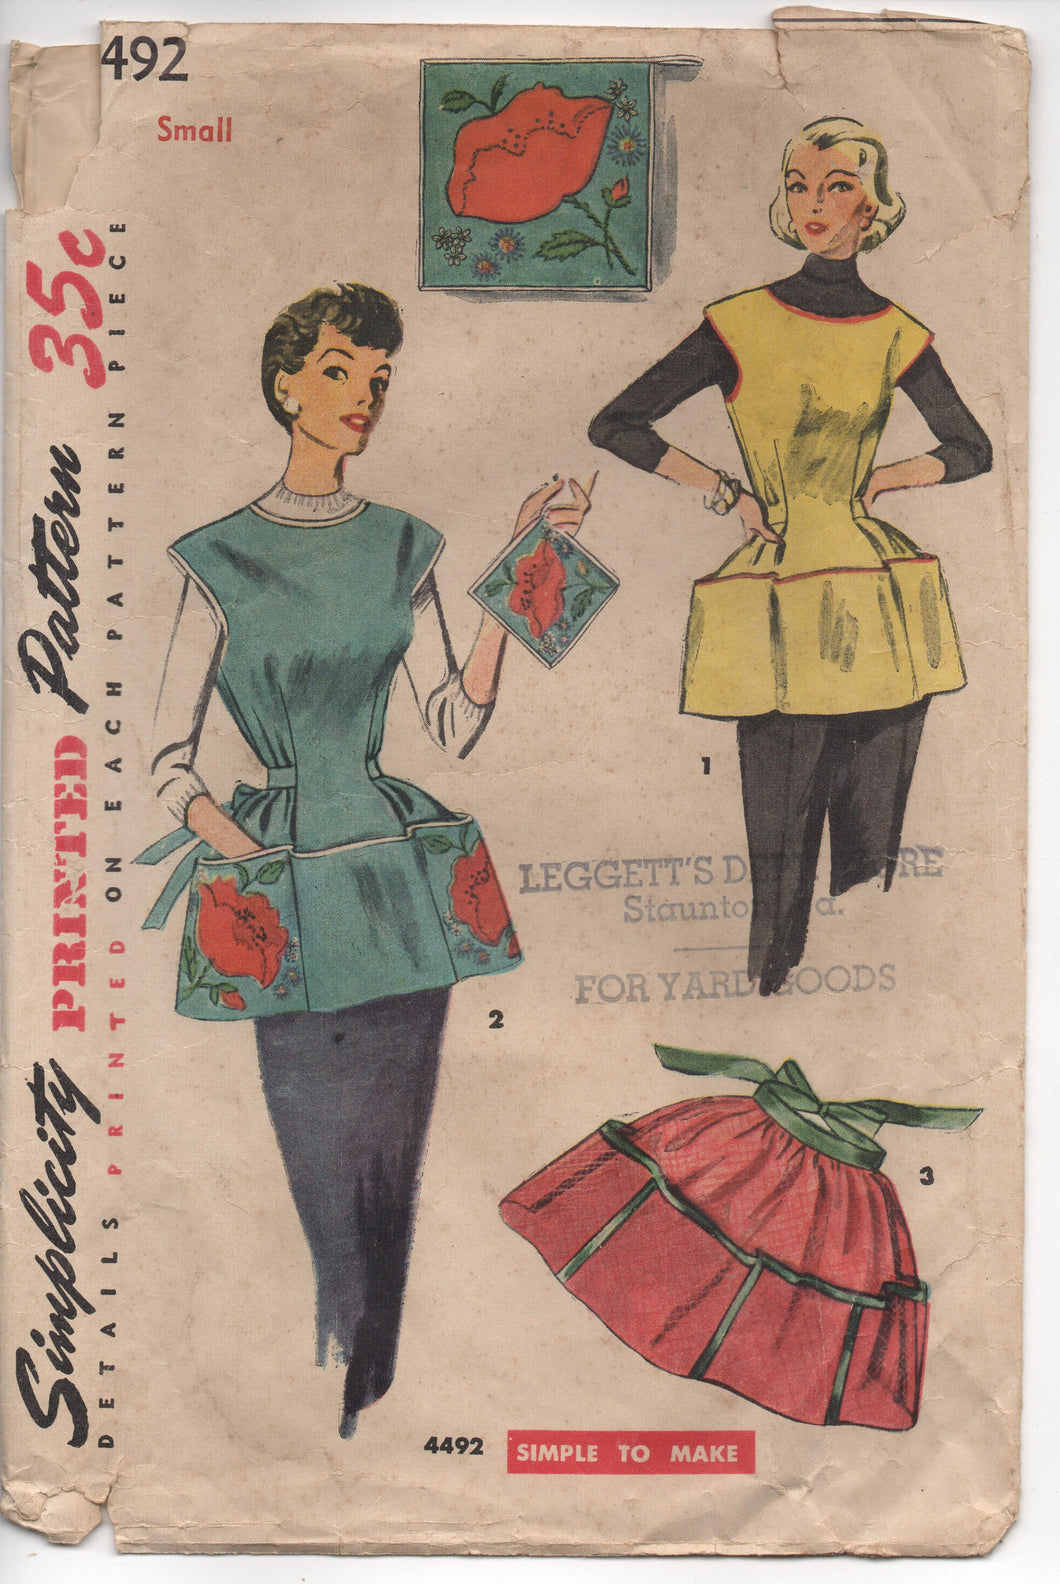 1950's Simplicity Full Apron with Pockets, Potholder and Transfer Pattern - Bust 30-32